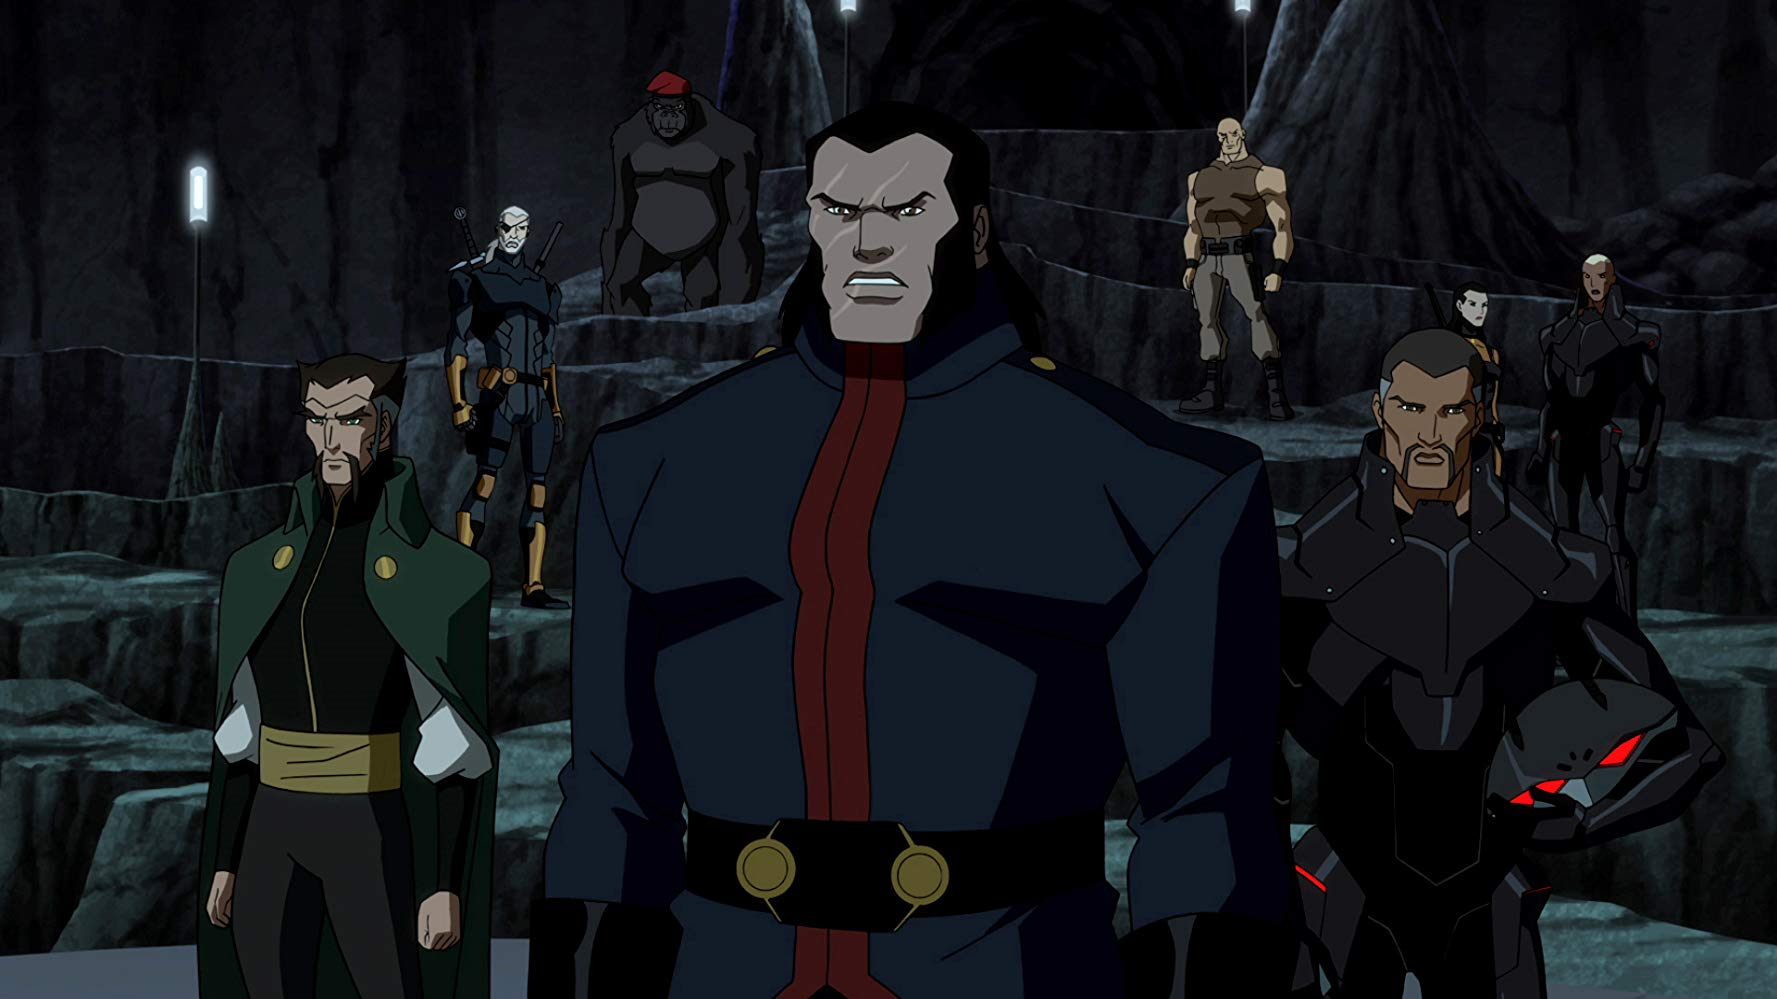 Vandal Savage and The Light in 'Young Justice'. (Source: IMDB)